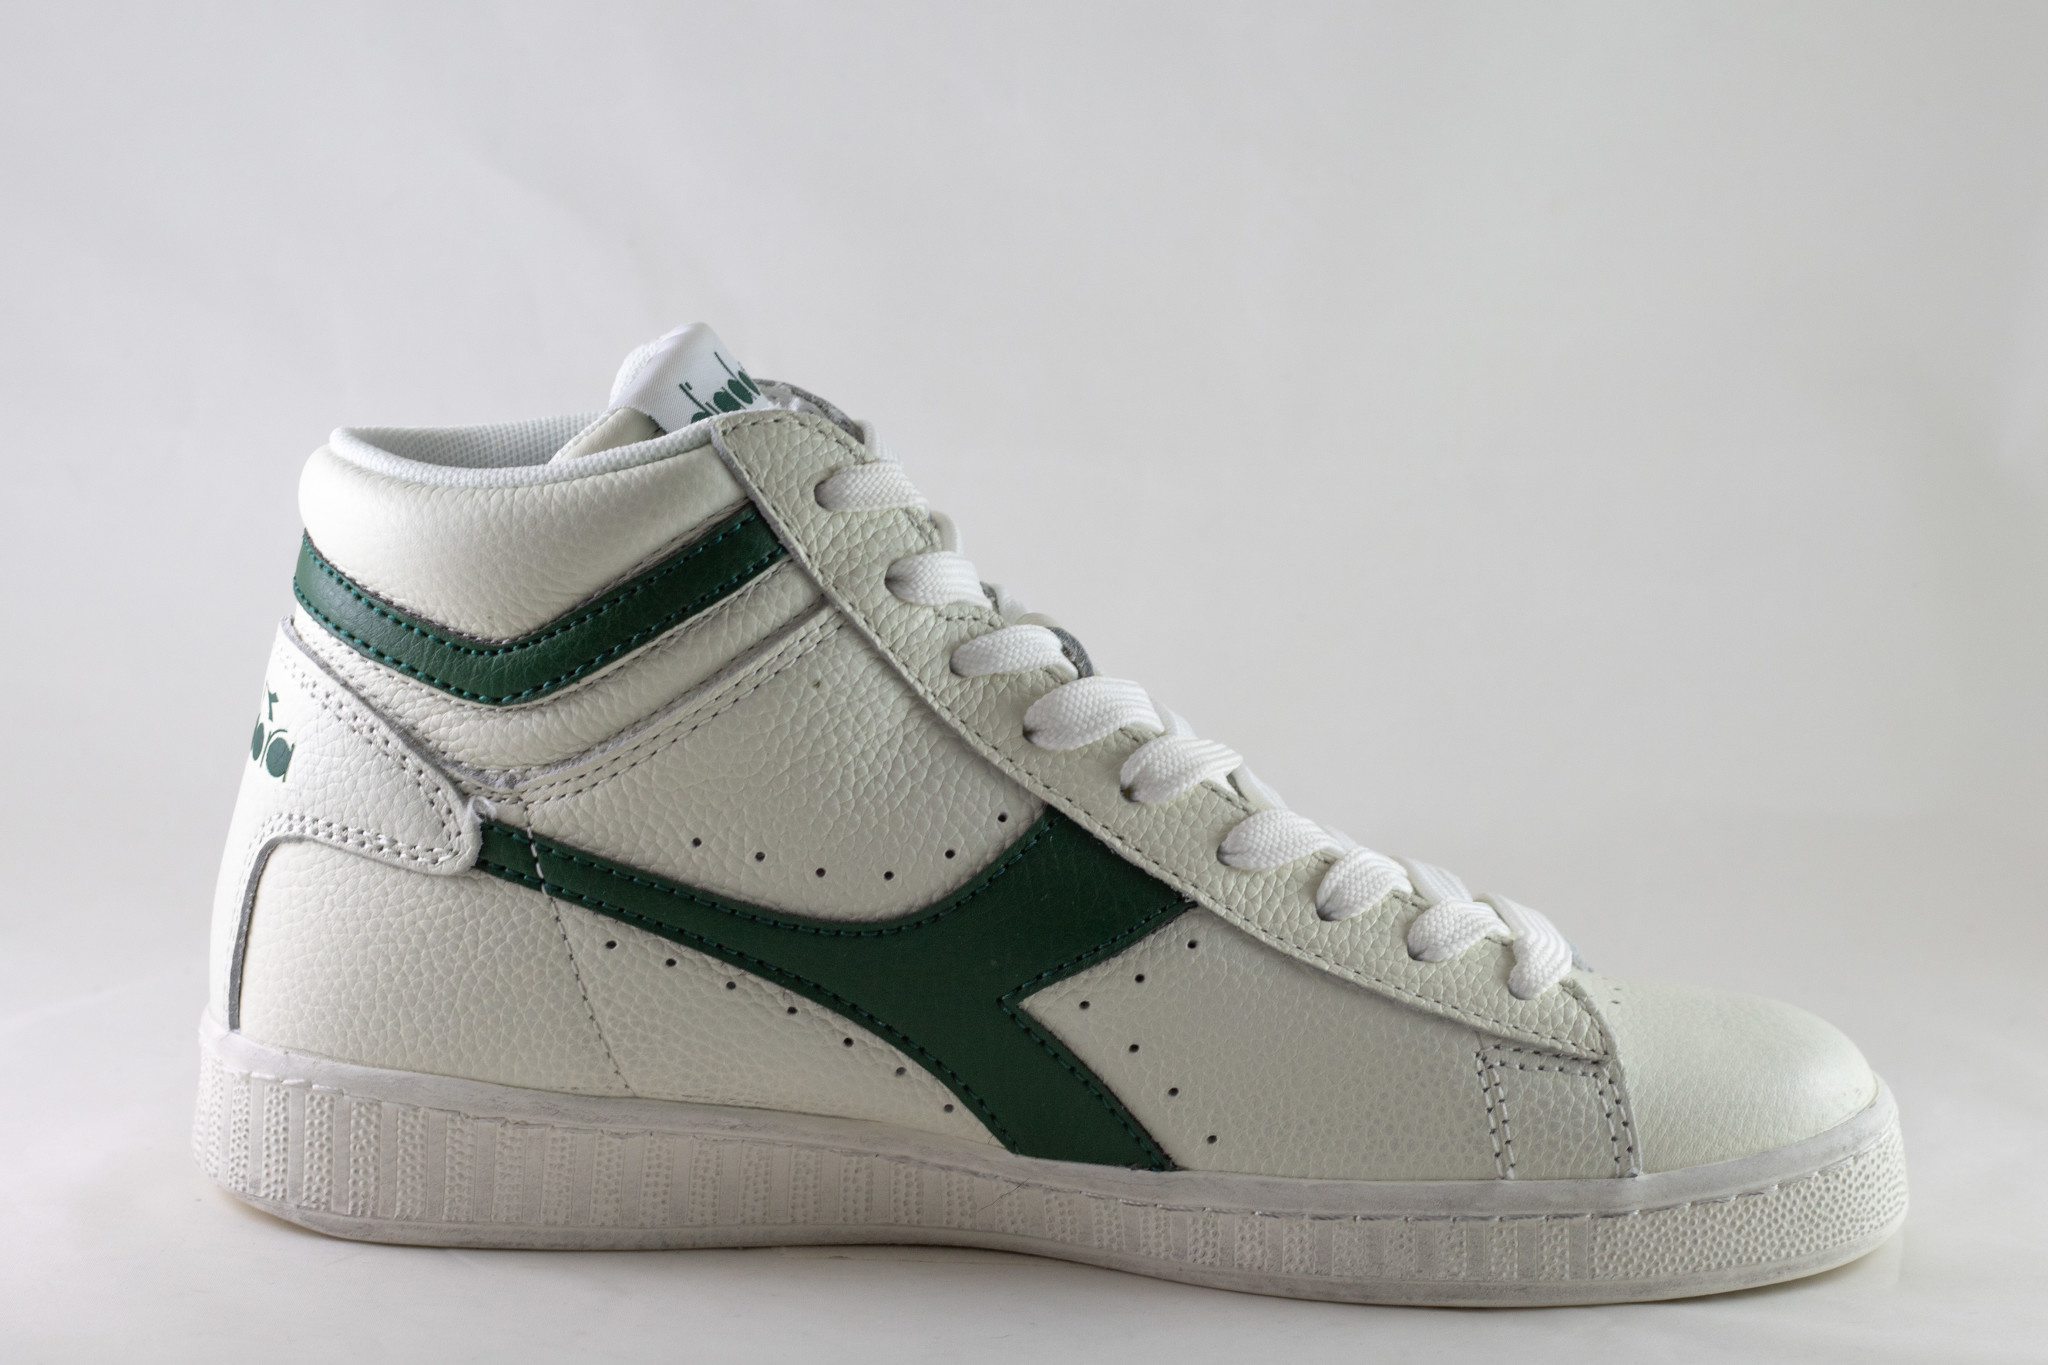 DIADORA GAME HIGH White/ Fogliage